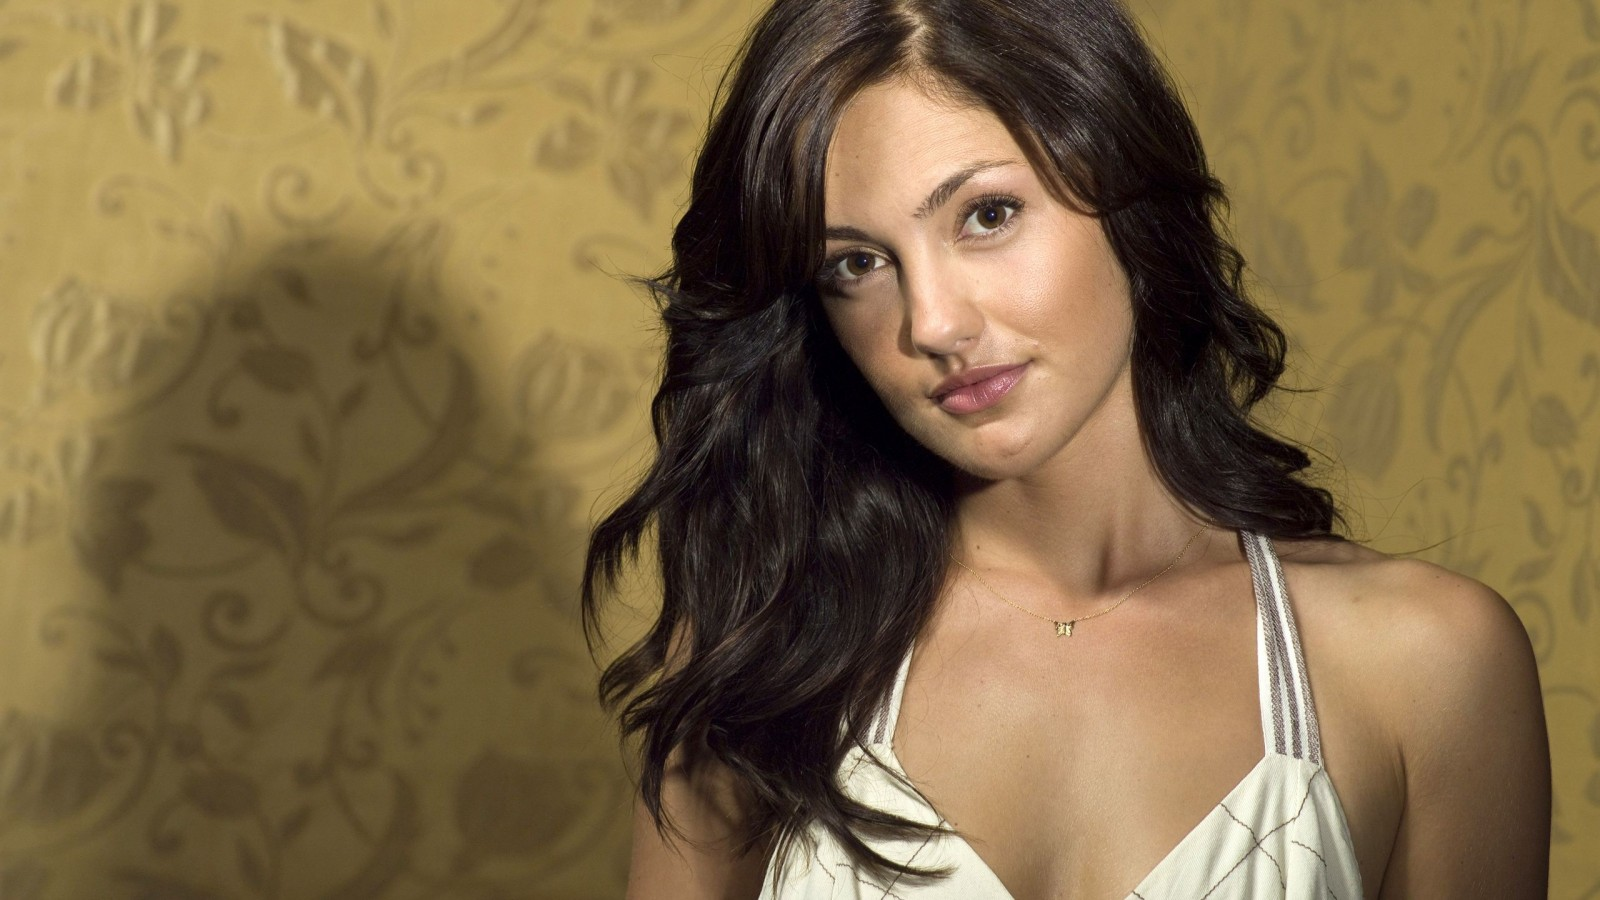 Minka Kelly Wallpaper 1600x900 50356